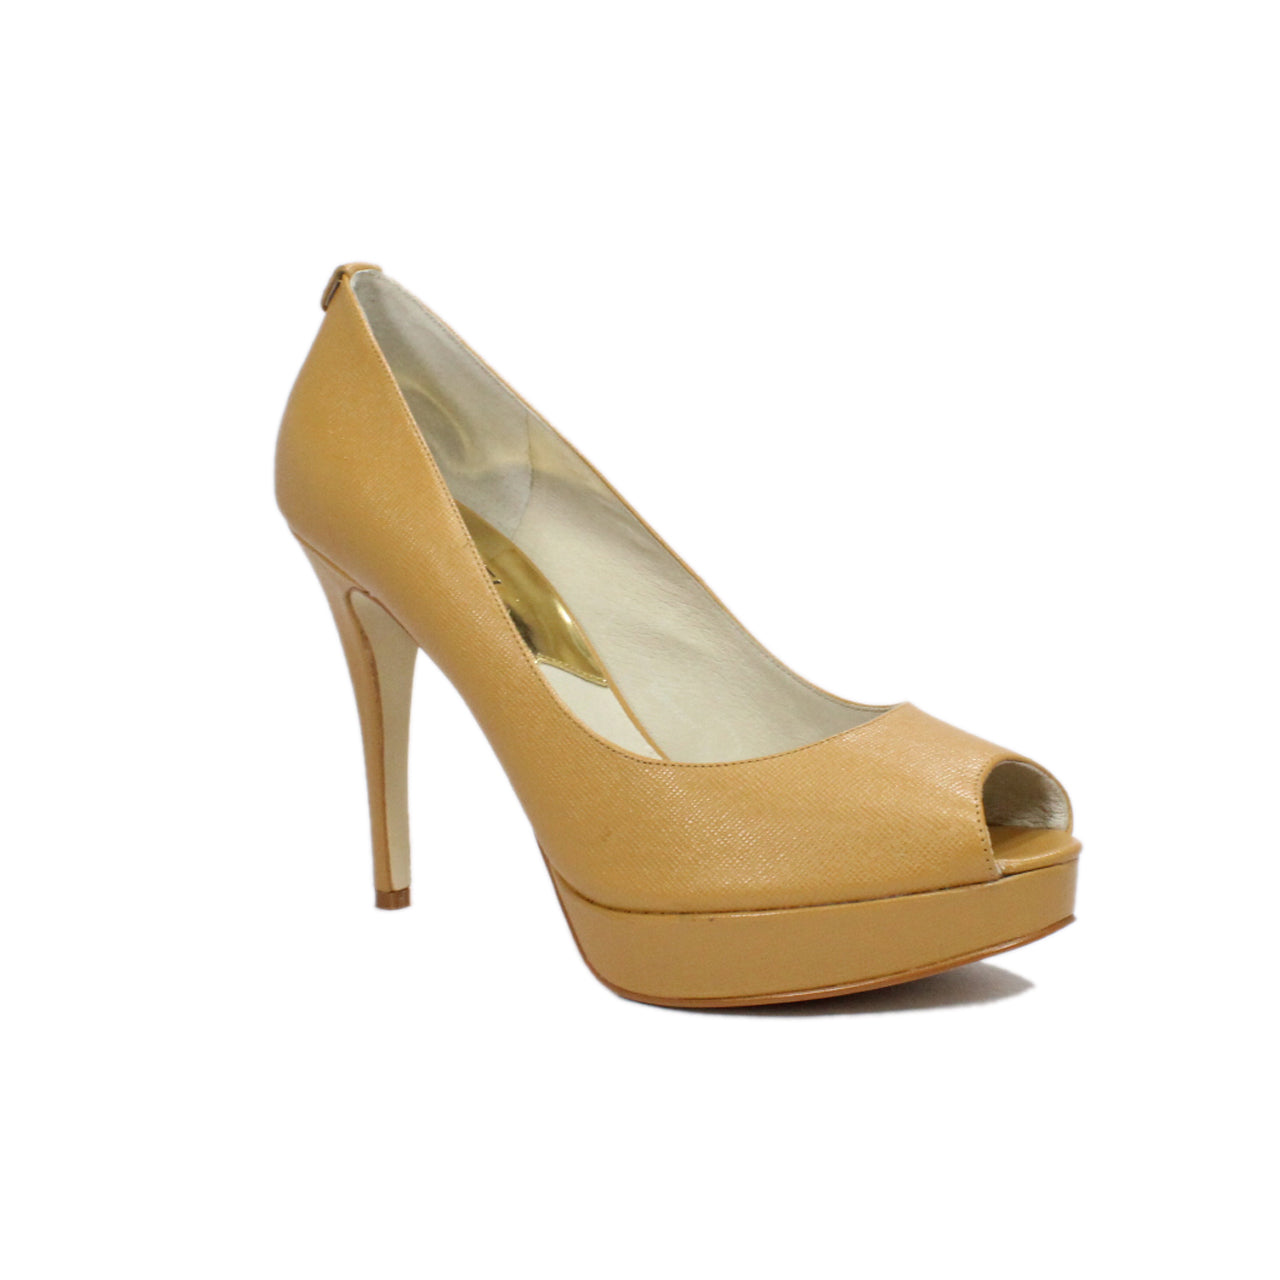 Michael Kors Women's York Platform Peep-Toe Pumps